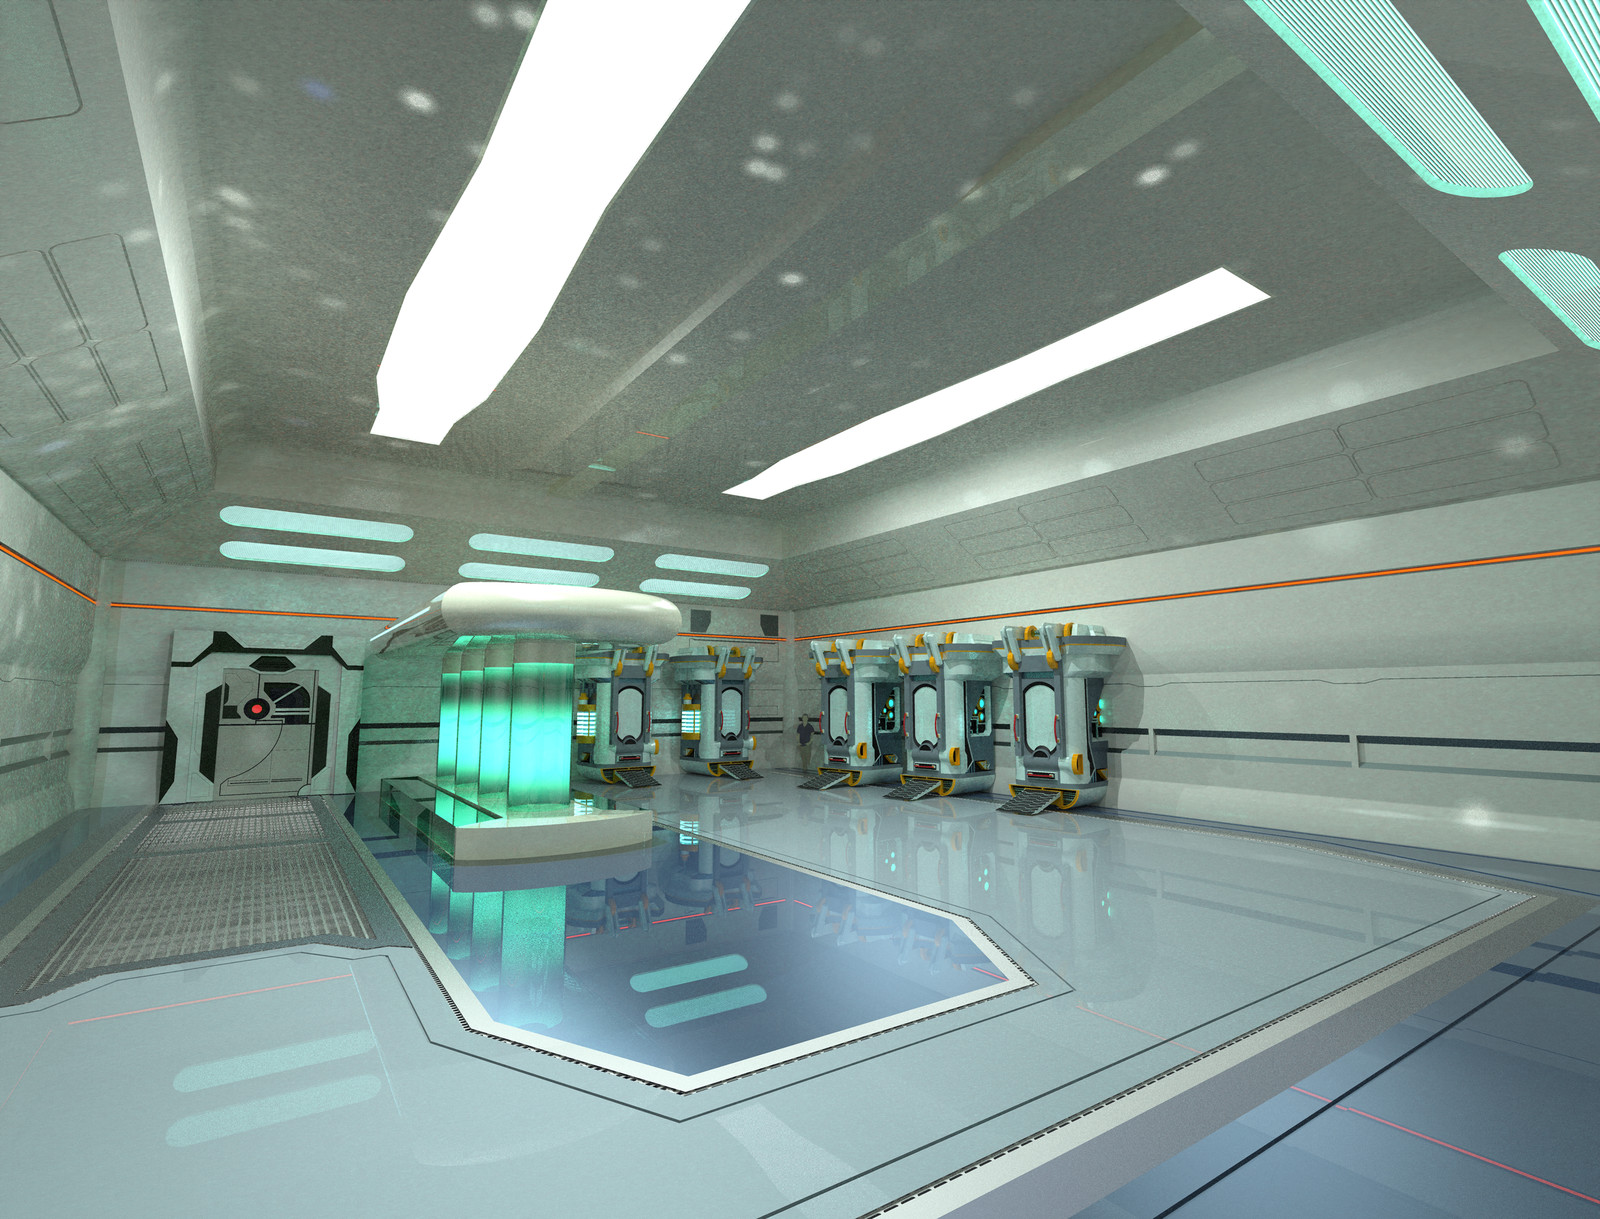 Null Directive environment prop concepts